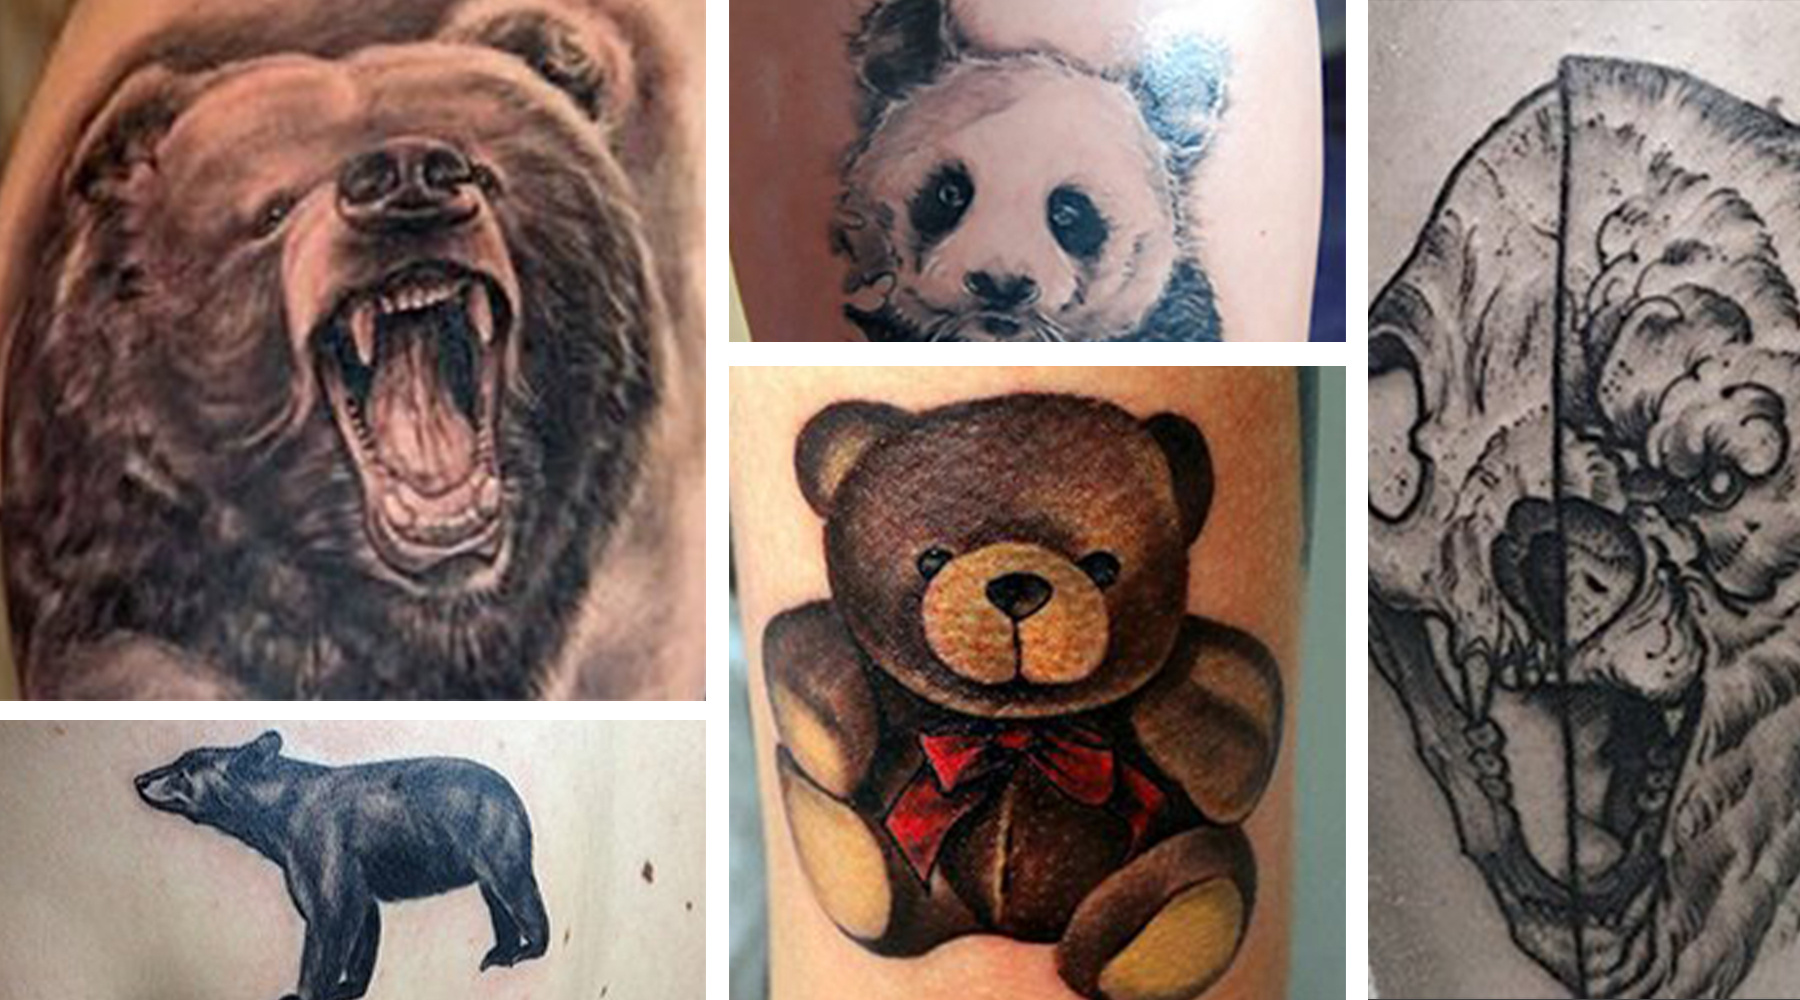 Bears are an increasingly rare yet undeniably beautiful animal. They live in different habitats all across the planet, and they are spiritually significant in many cultures throughout the world. In an...